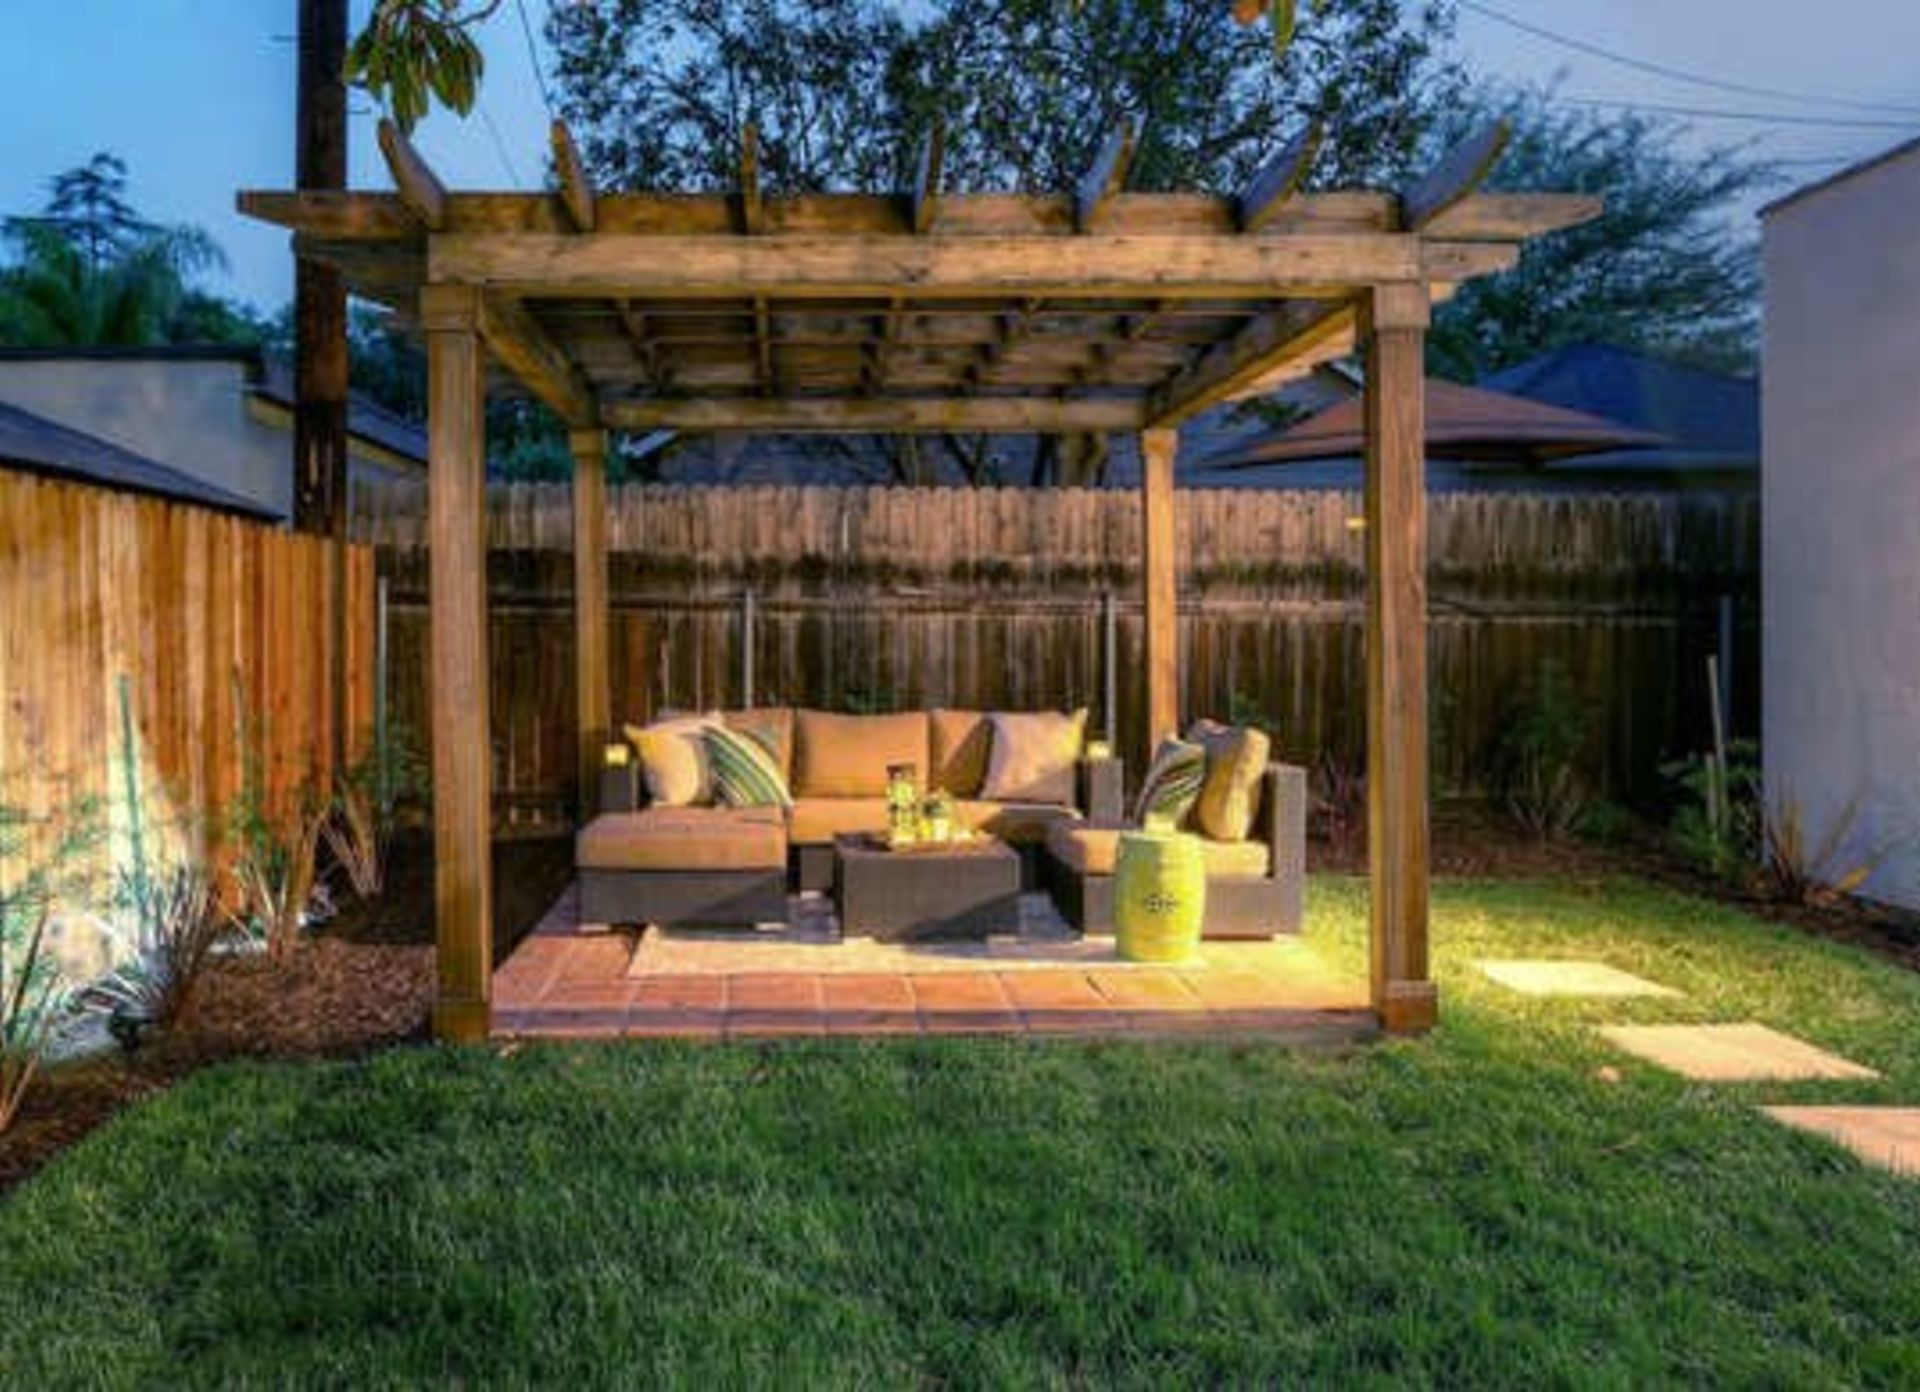 Building The Backyard of Your Dreams